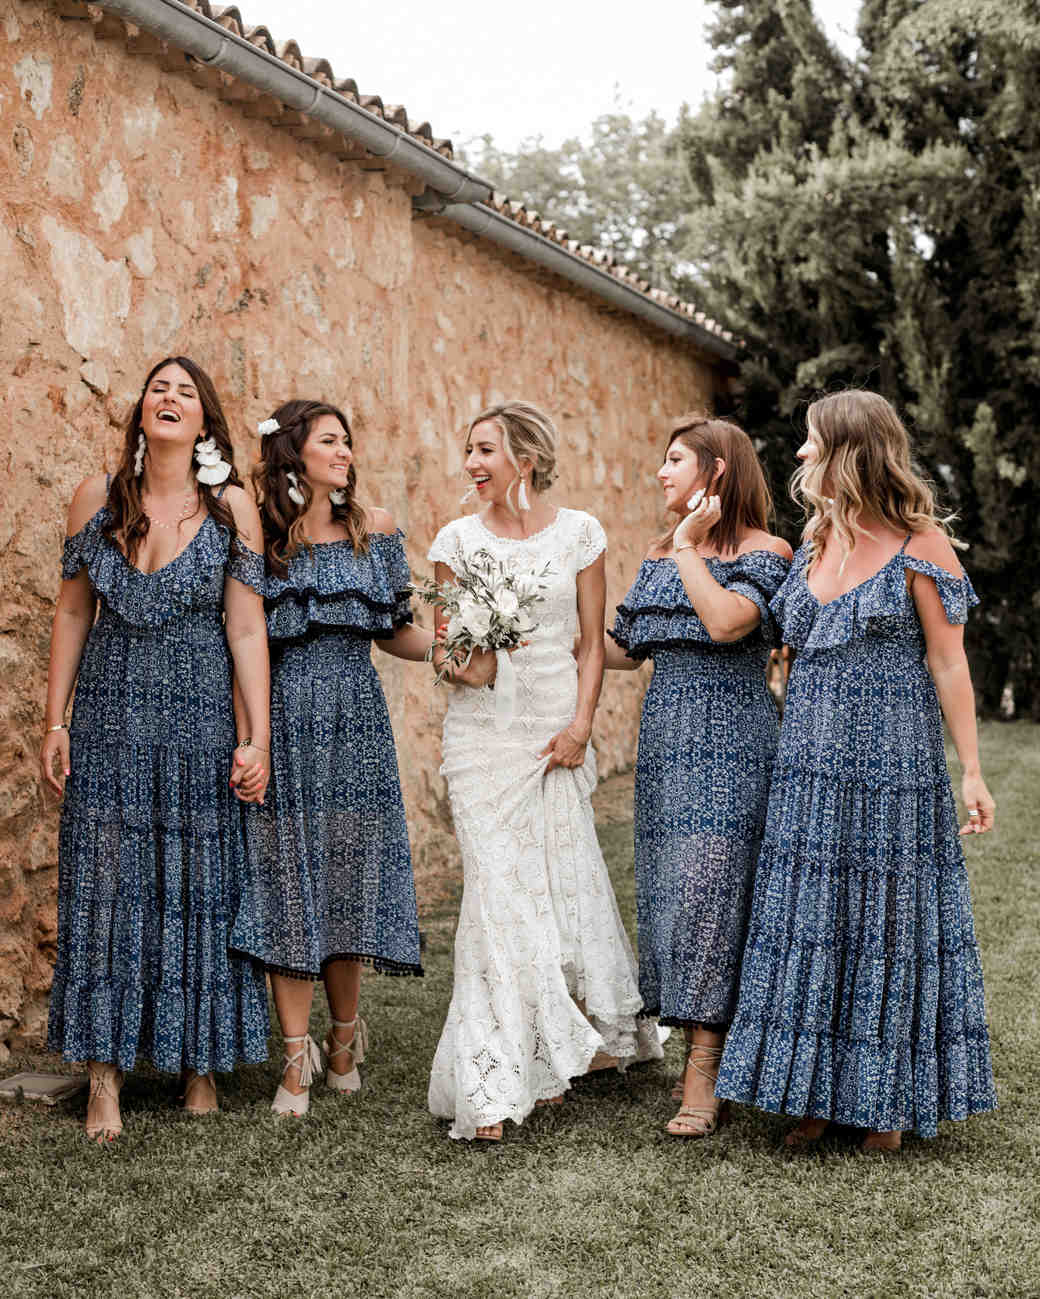 5038e54234b3 28 Mismatched Bridesmaids Dresses from Real Weddings - Best Mix and Match Bridesmaids  Dresses